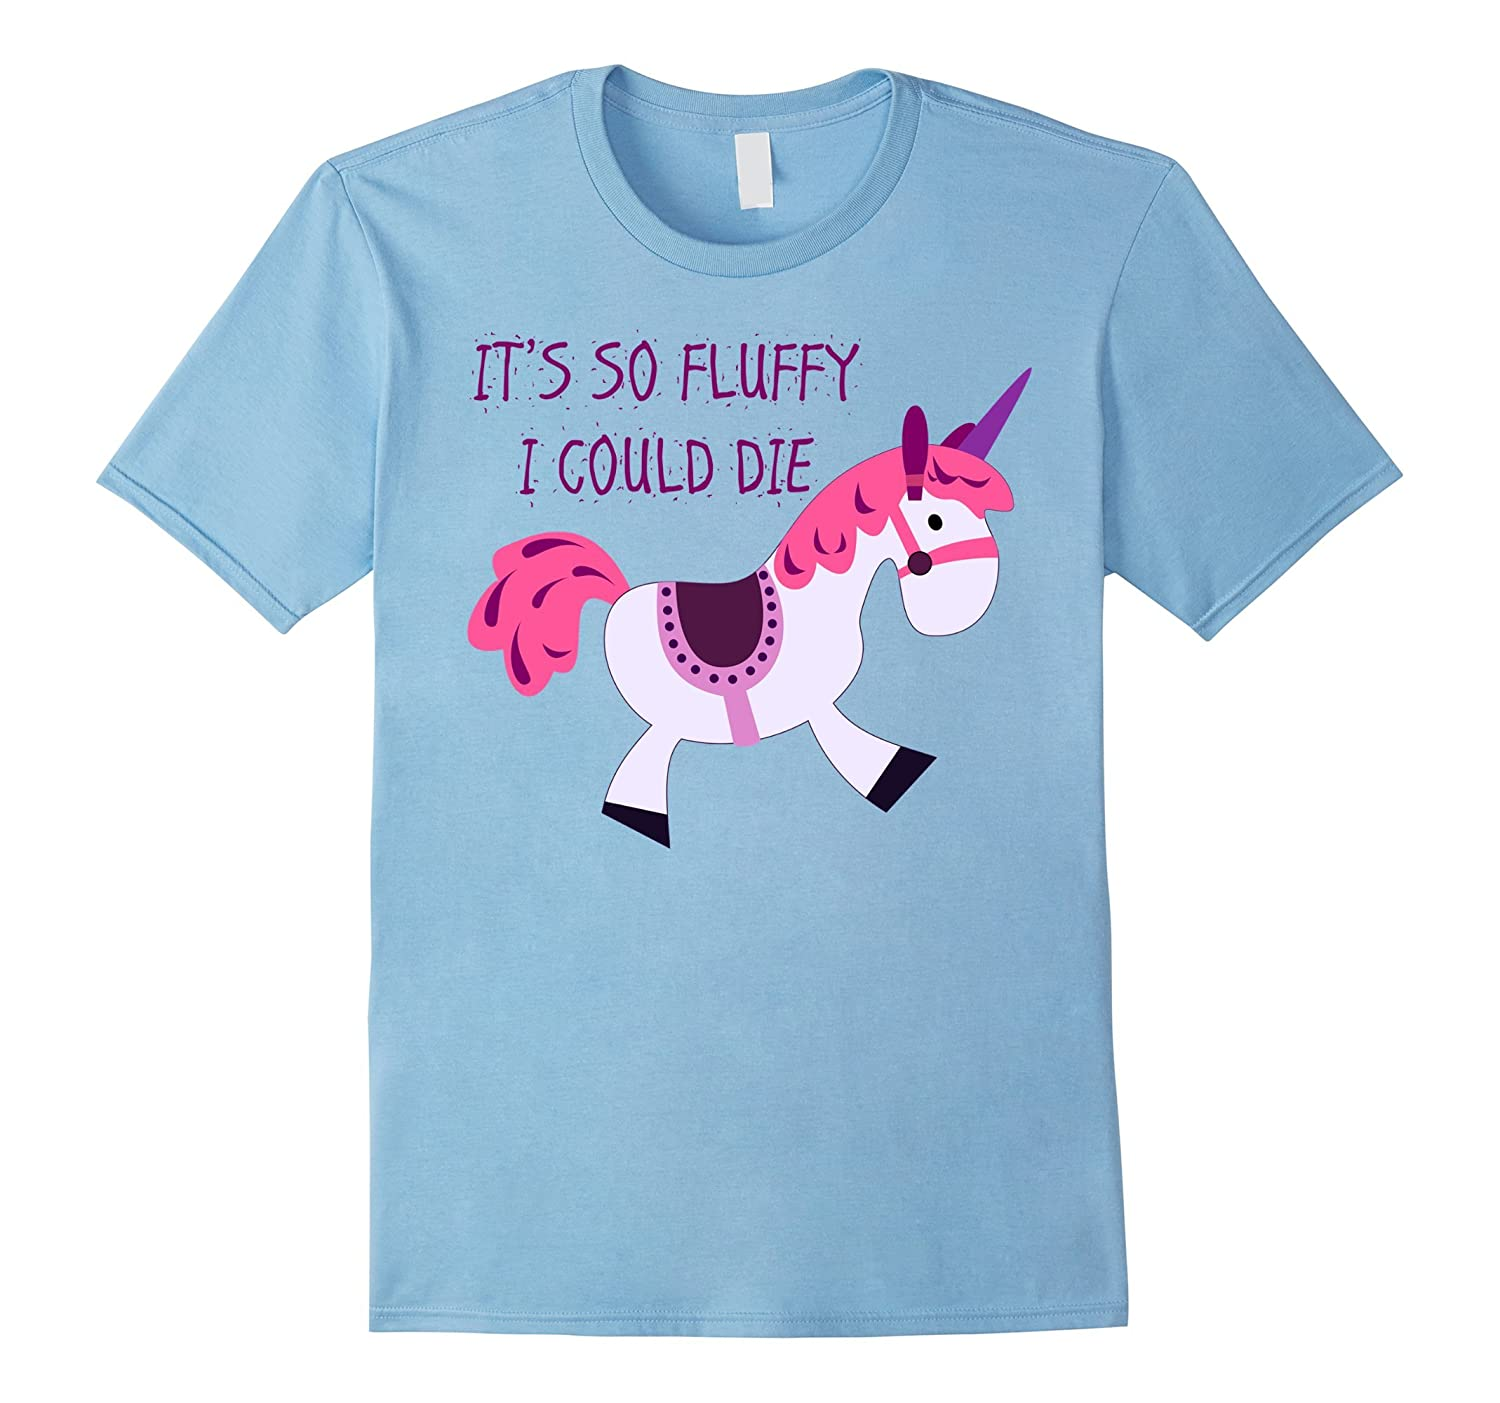 It's So Fluffy I Could Die Stuffed Unicorn Children's Toy